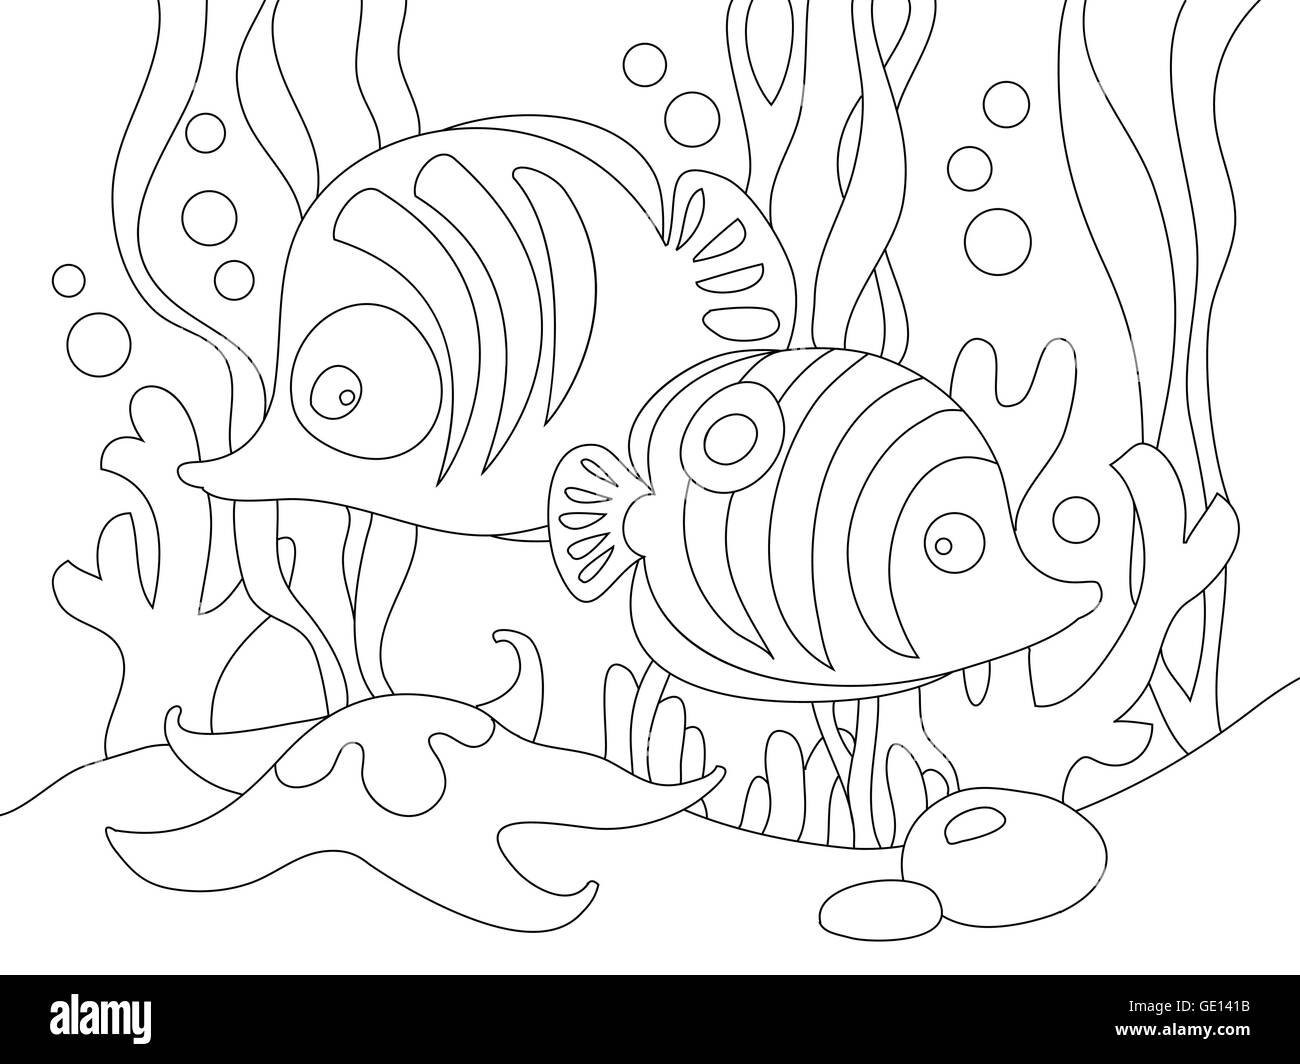 Two cute cartoon fishes under the sea. - Stock Image